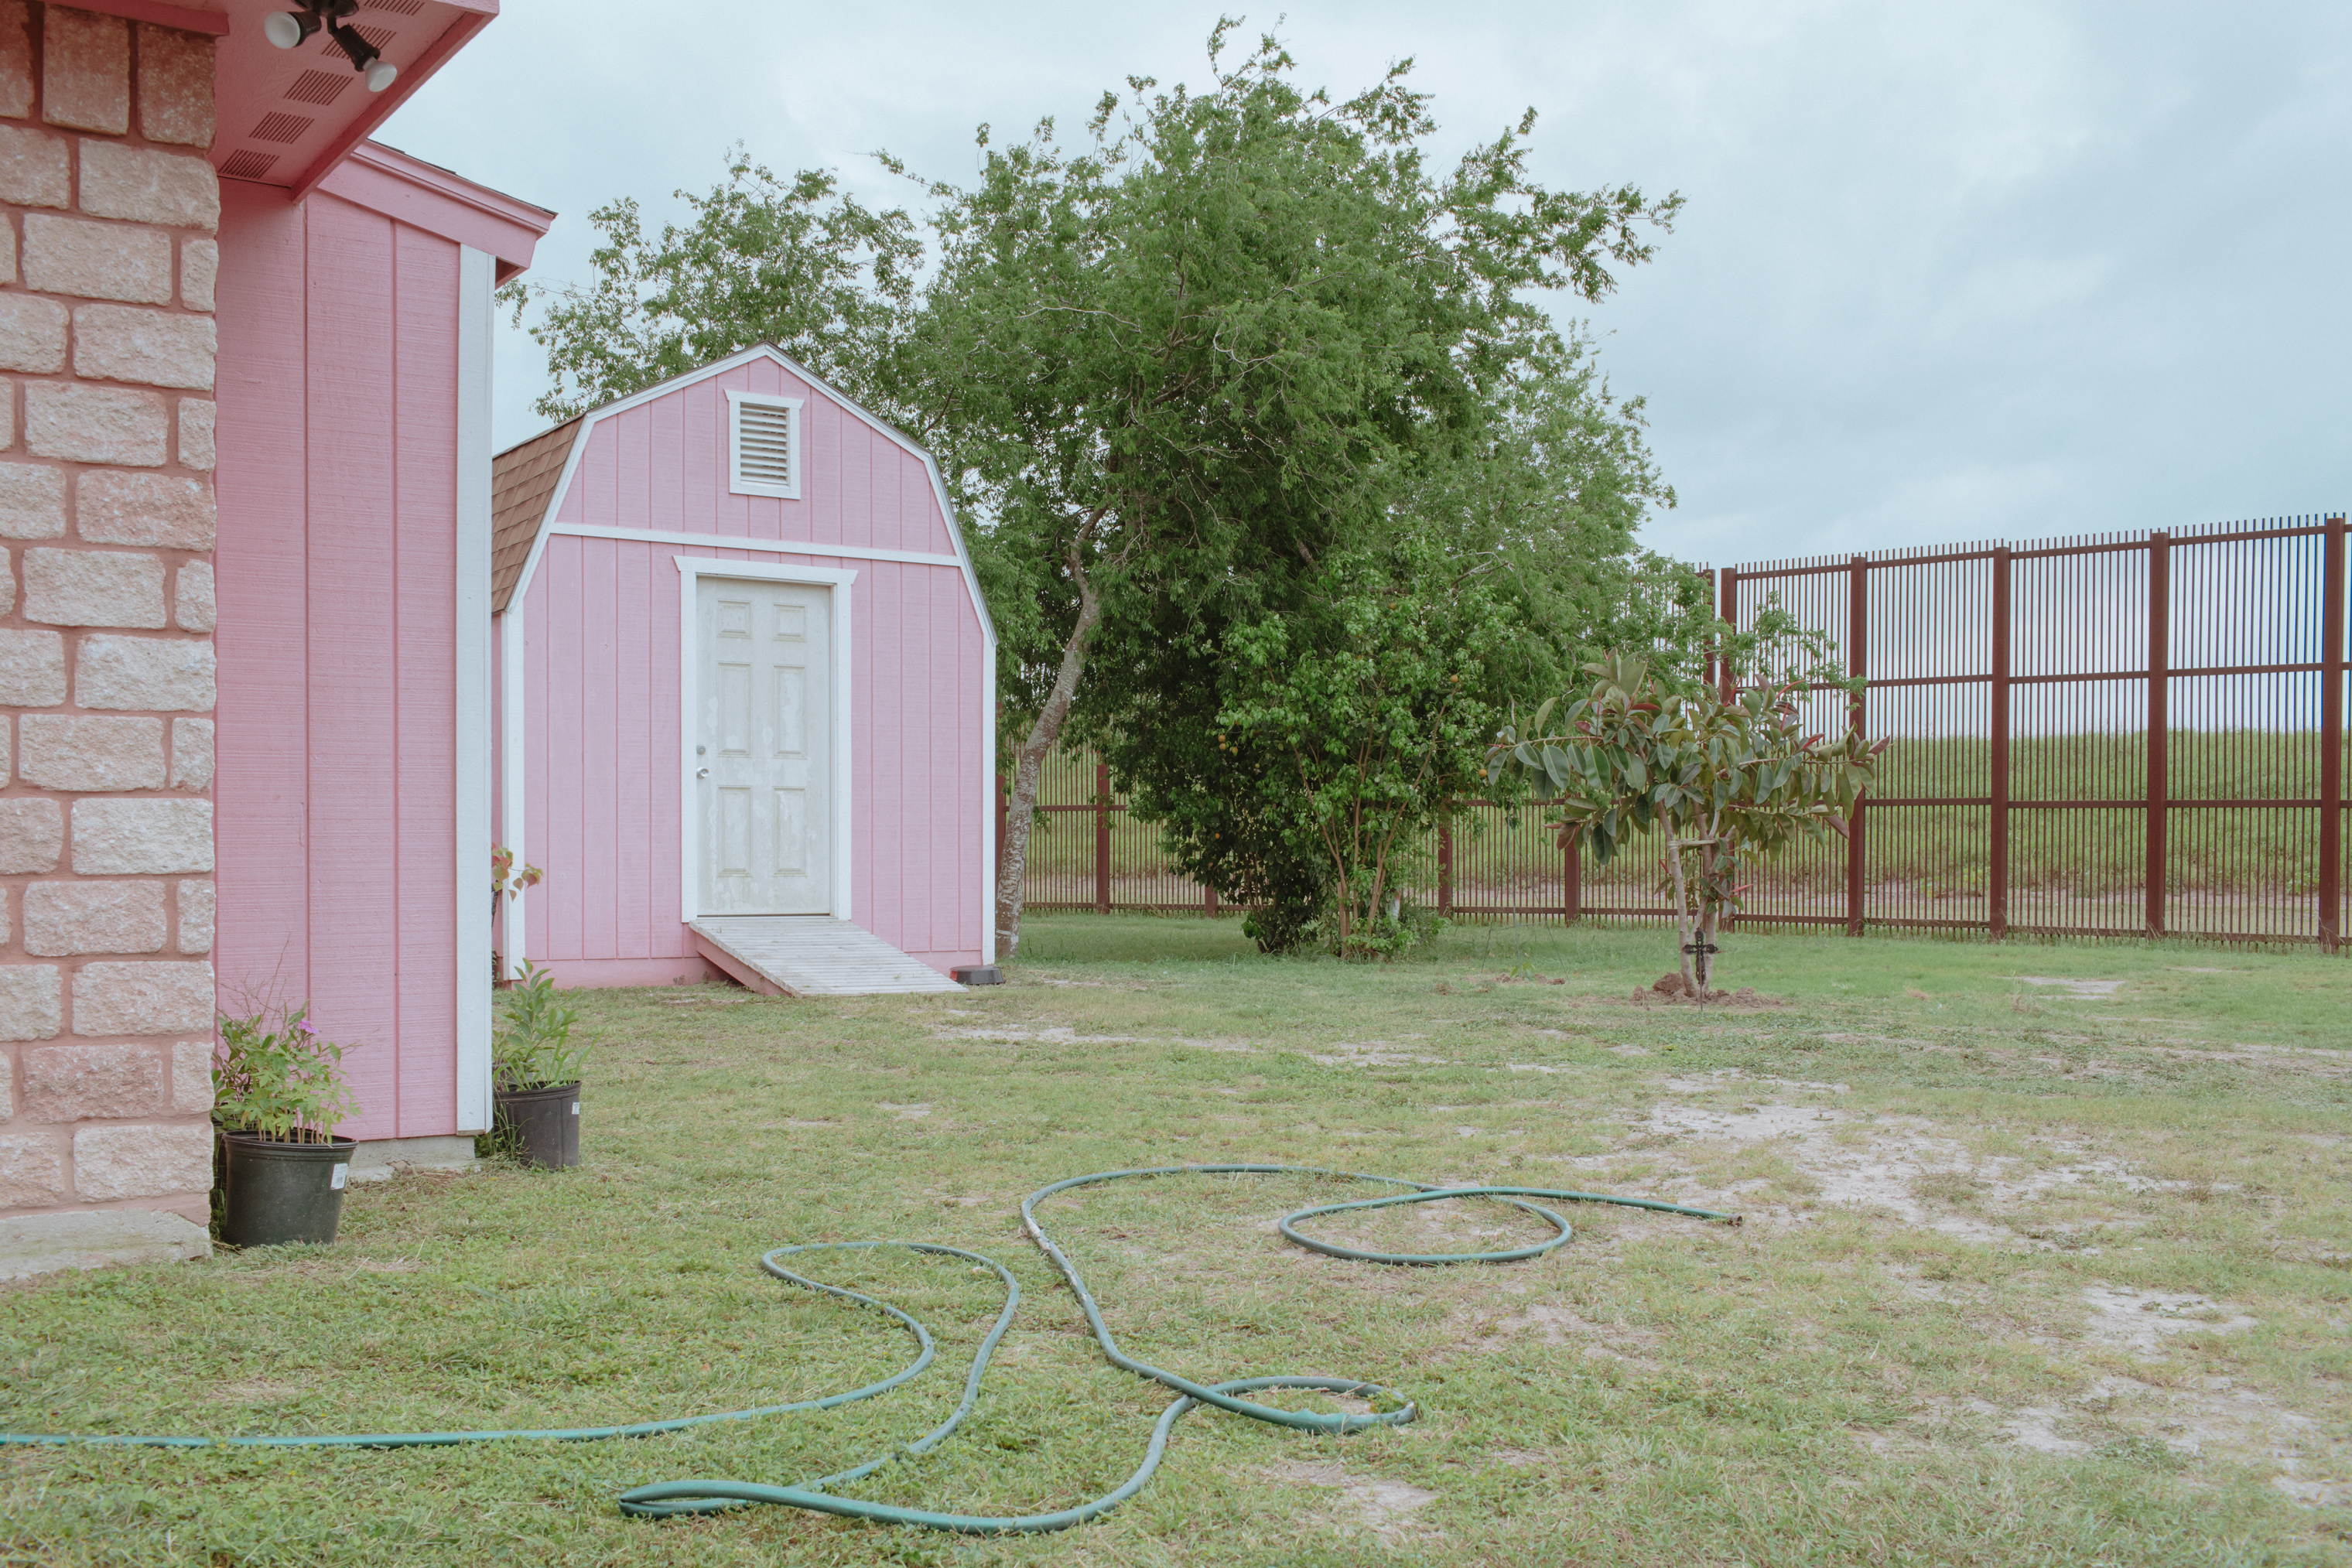 A backyard in Brownsville, Texas.